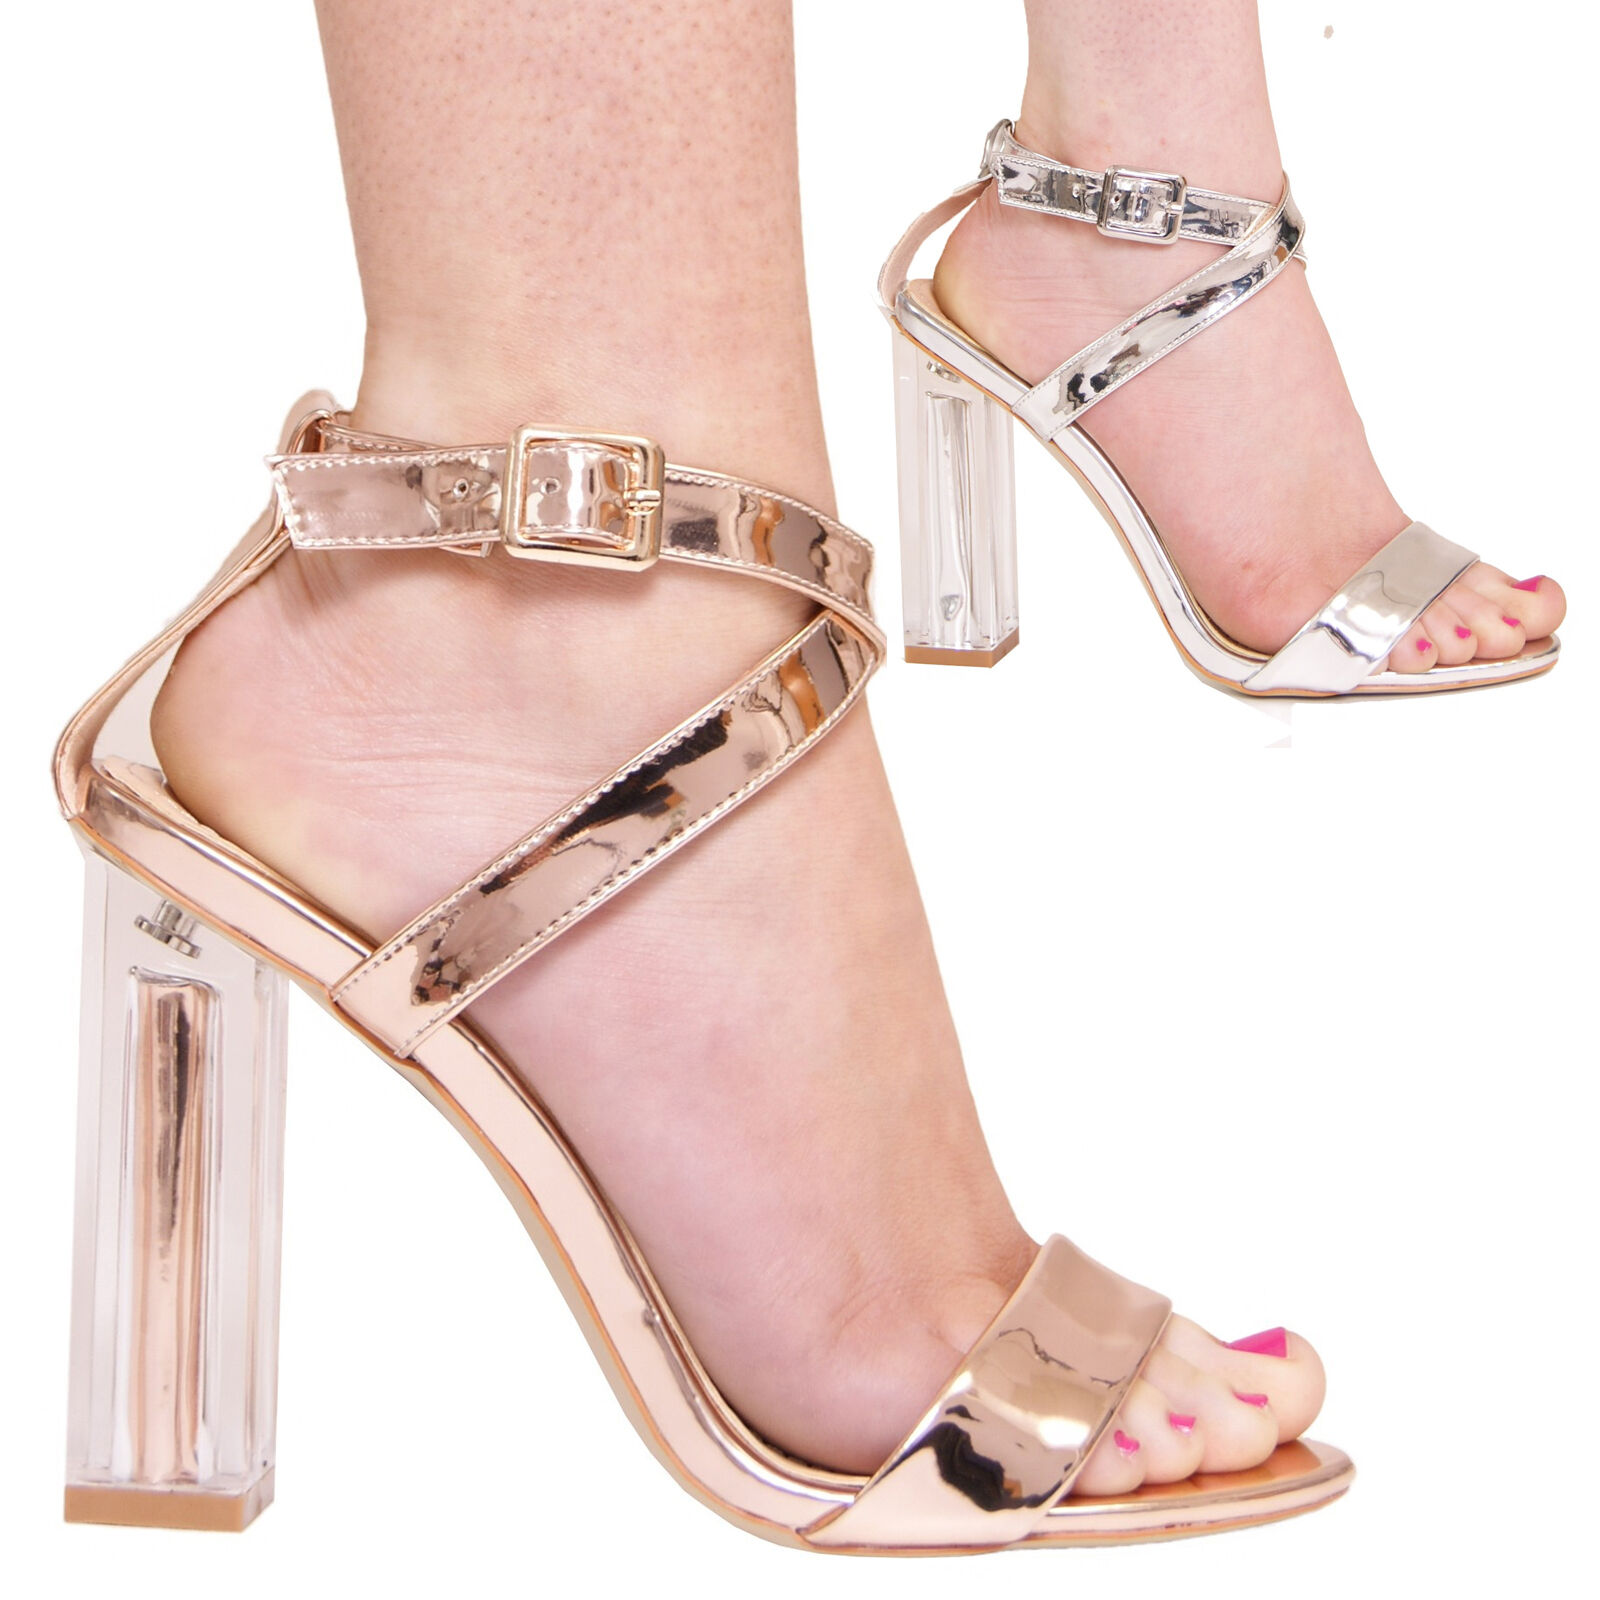 LADIES WOMENS PERSPEX SANDALS FORMAL EVENING PARTY FASHION STYLE METALLIC SHOES